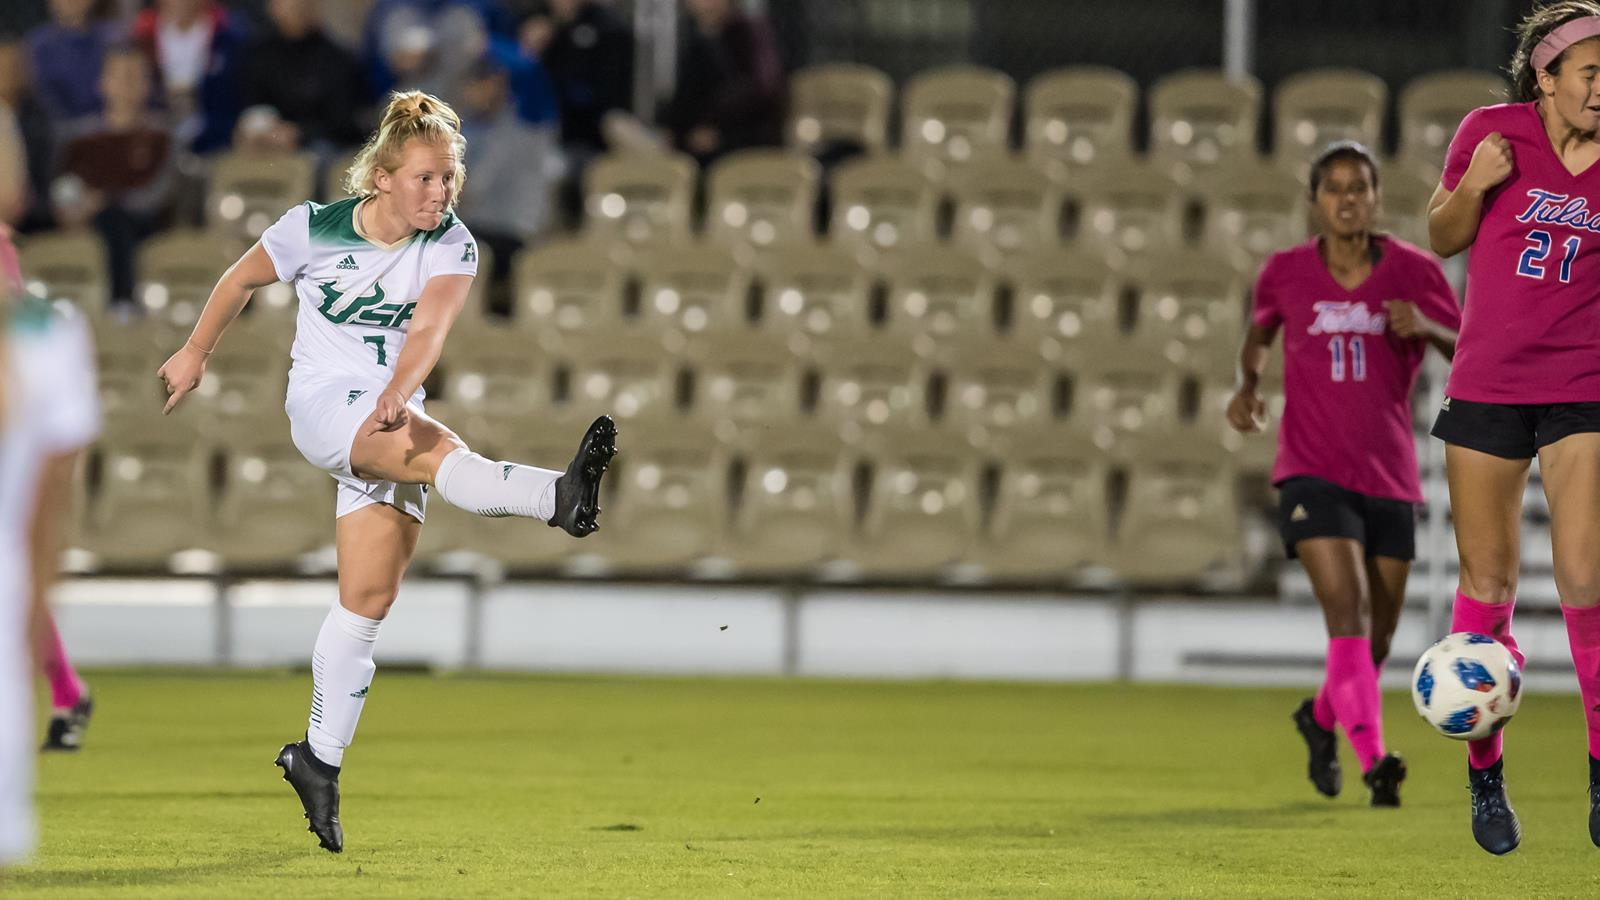 Katie Kitching - Women's Soccer - USF Athletics